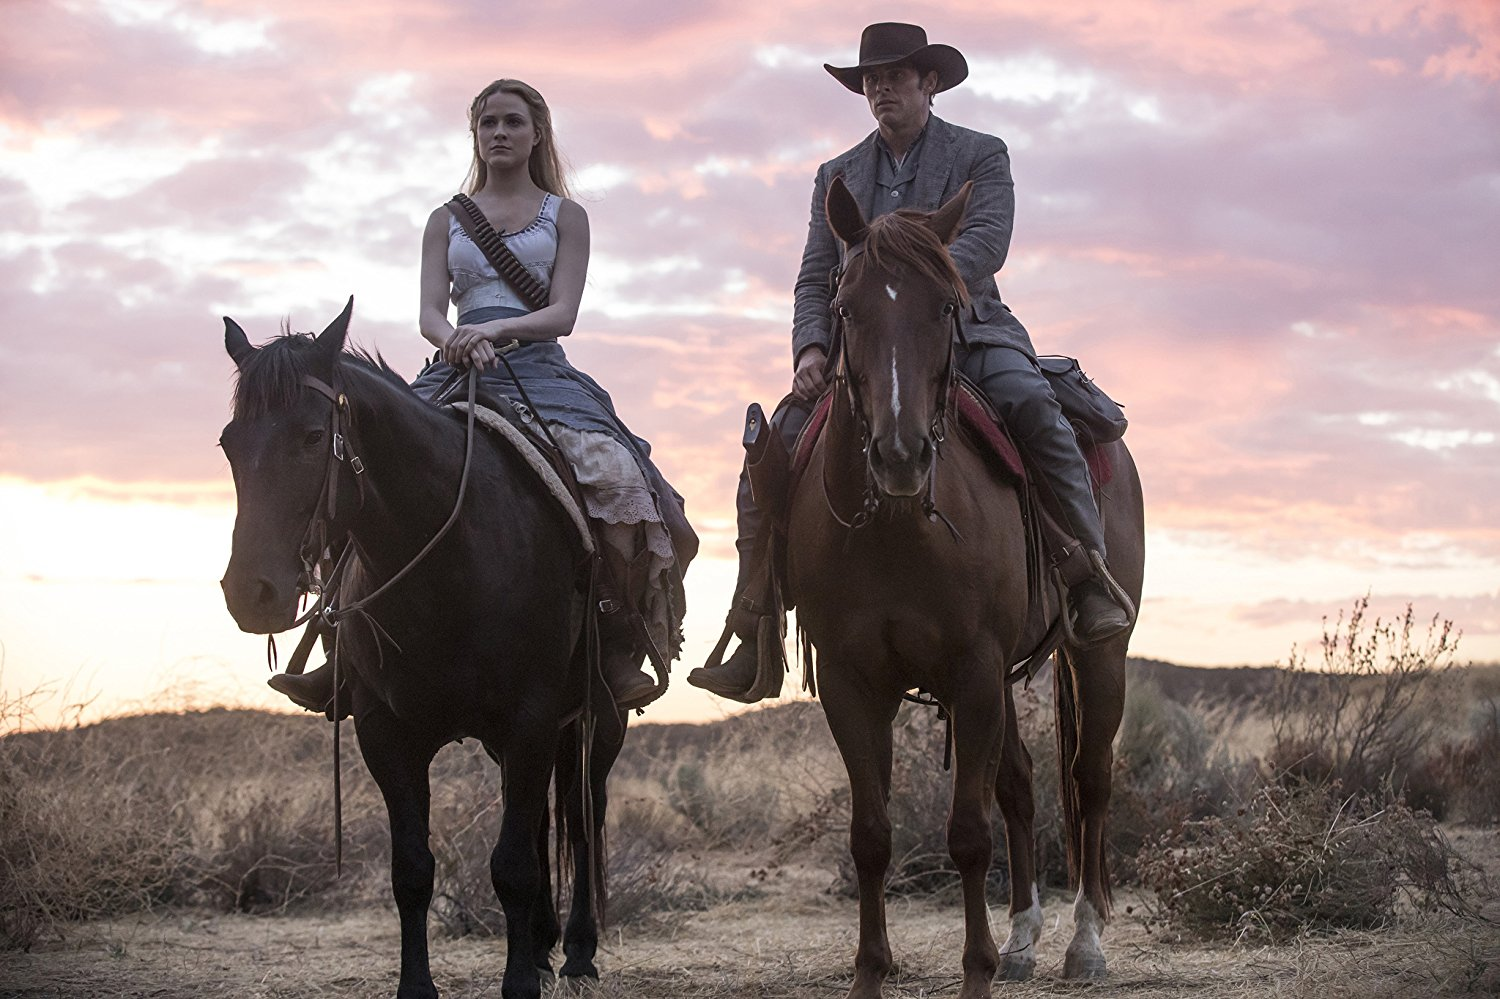 https://cinemaplanet.pt/wp-content/uploads/2018/04/Westworld.jpg